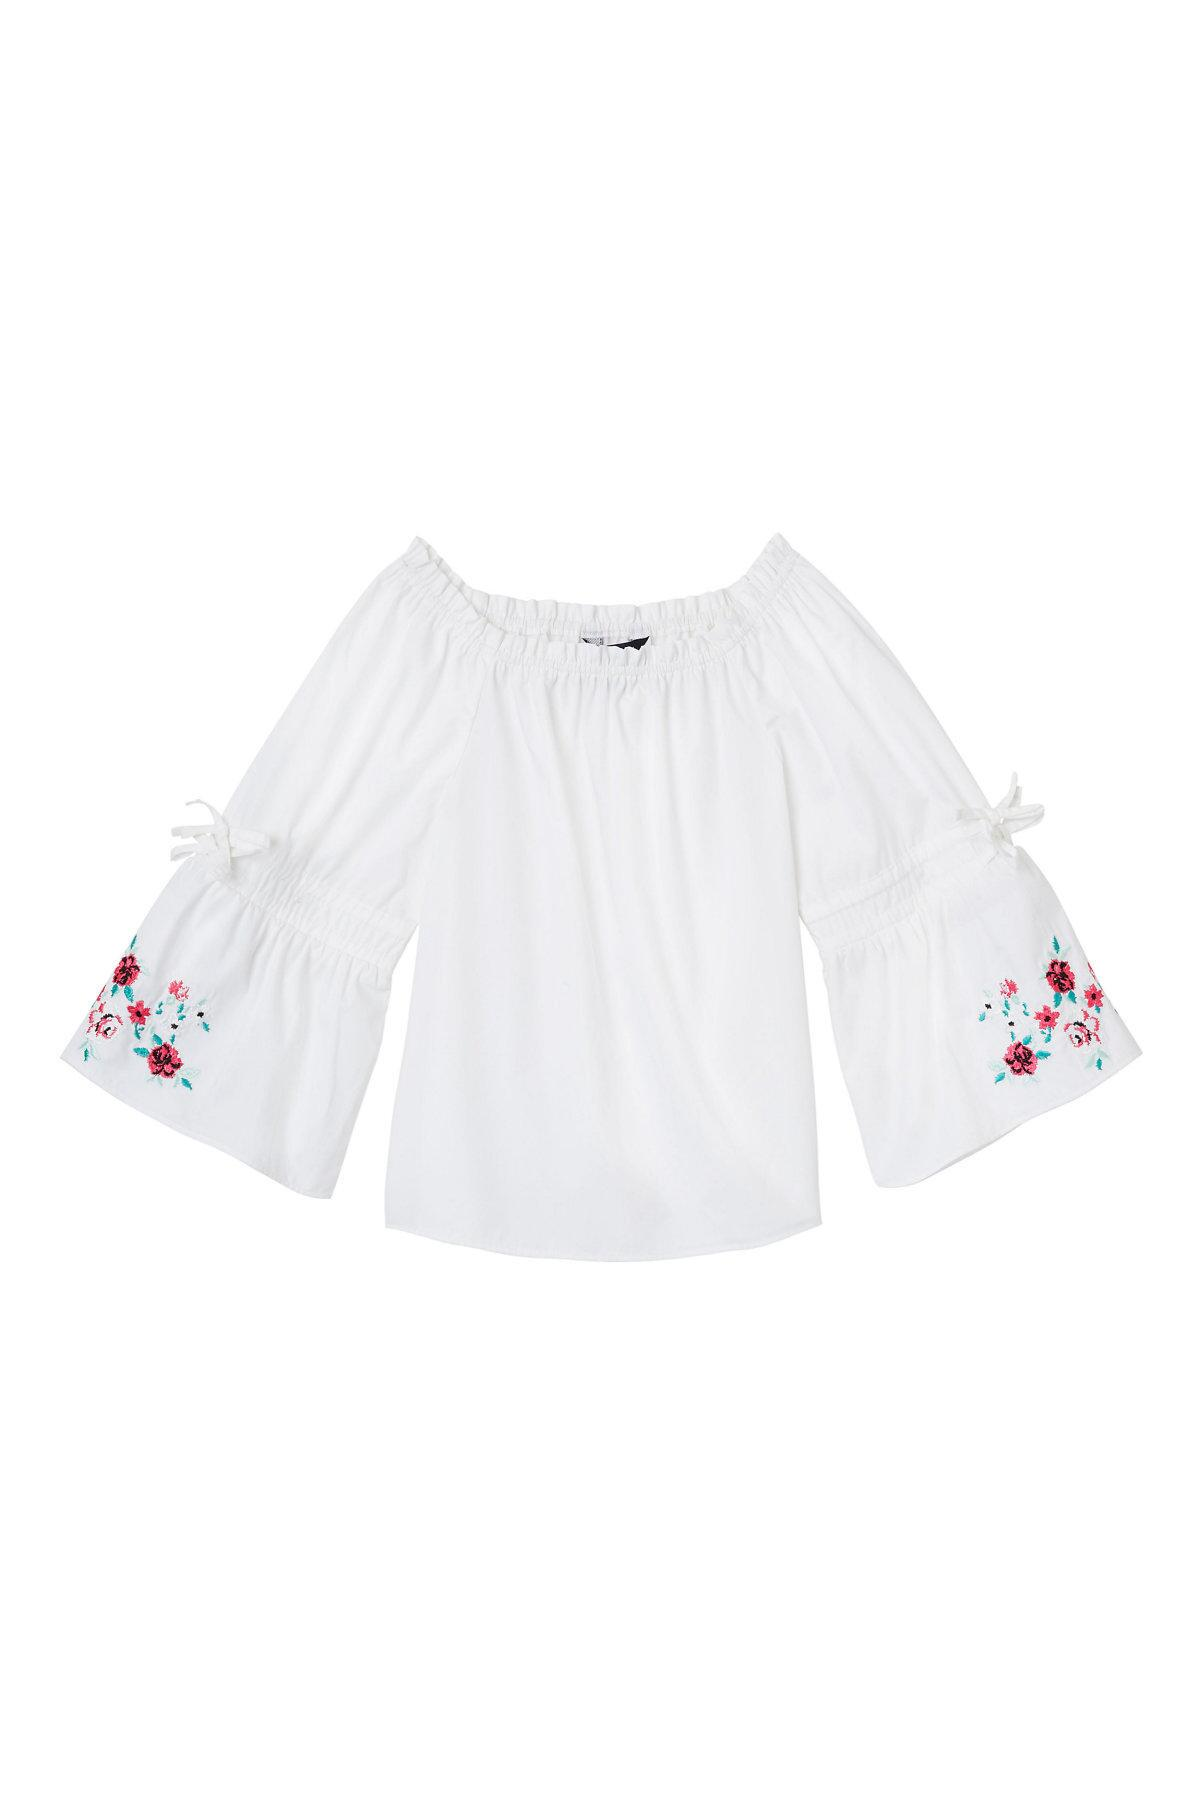 8eac3040c7 After School Kids Clothing | French Toast - French Toast